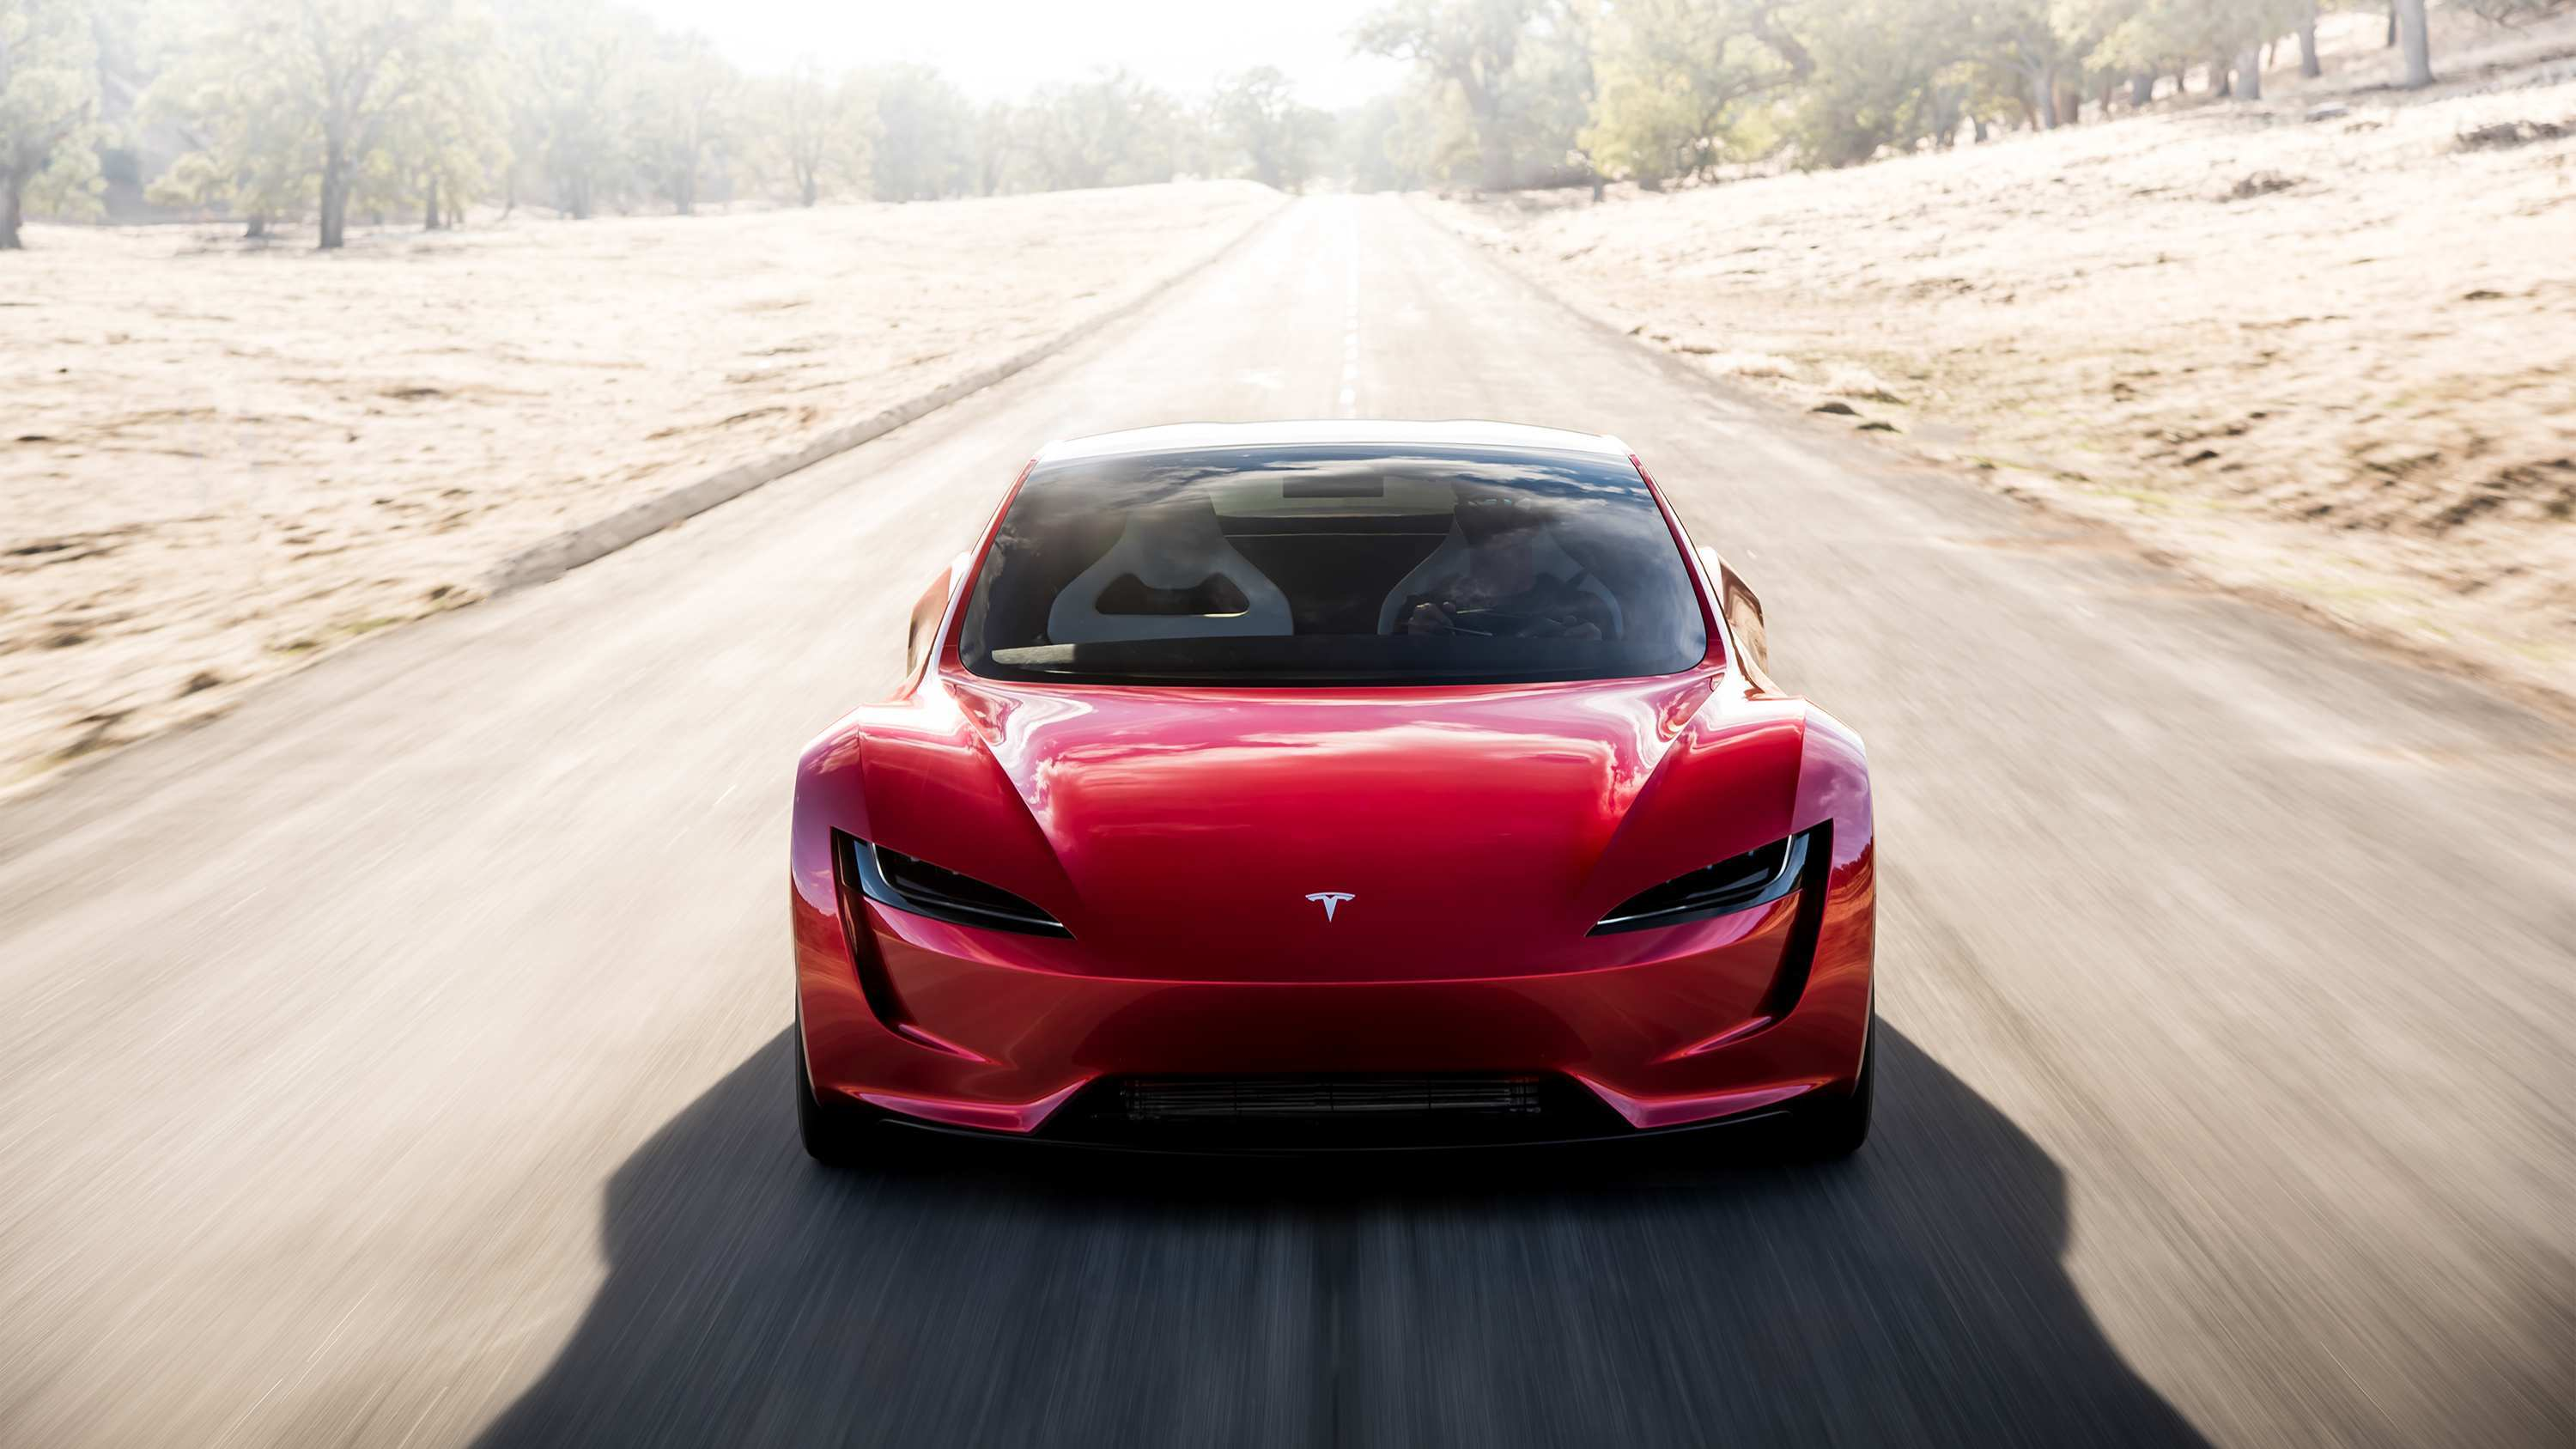 94 All New 2020 Tesla Roadster Weight Picture with 2020 Tesla Roadster Weight